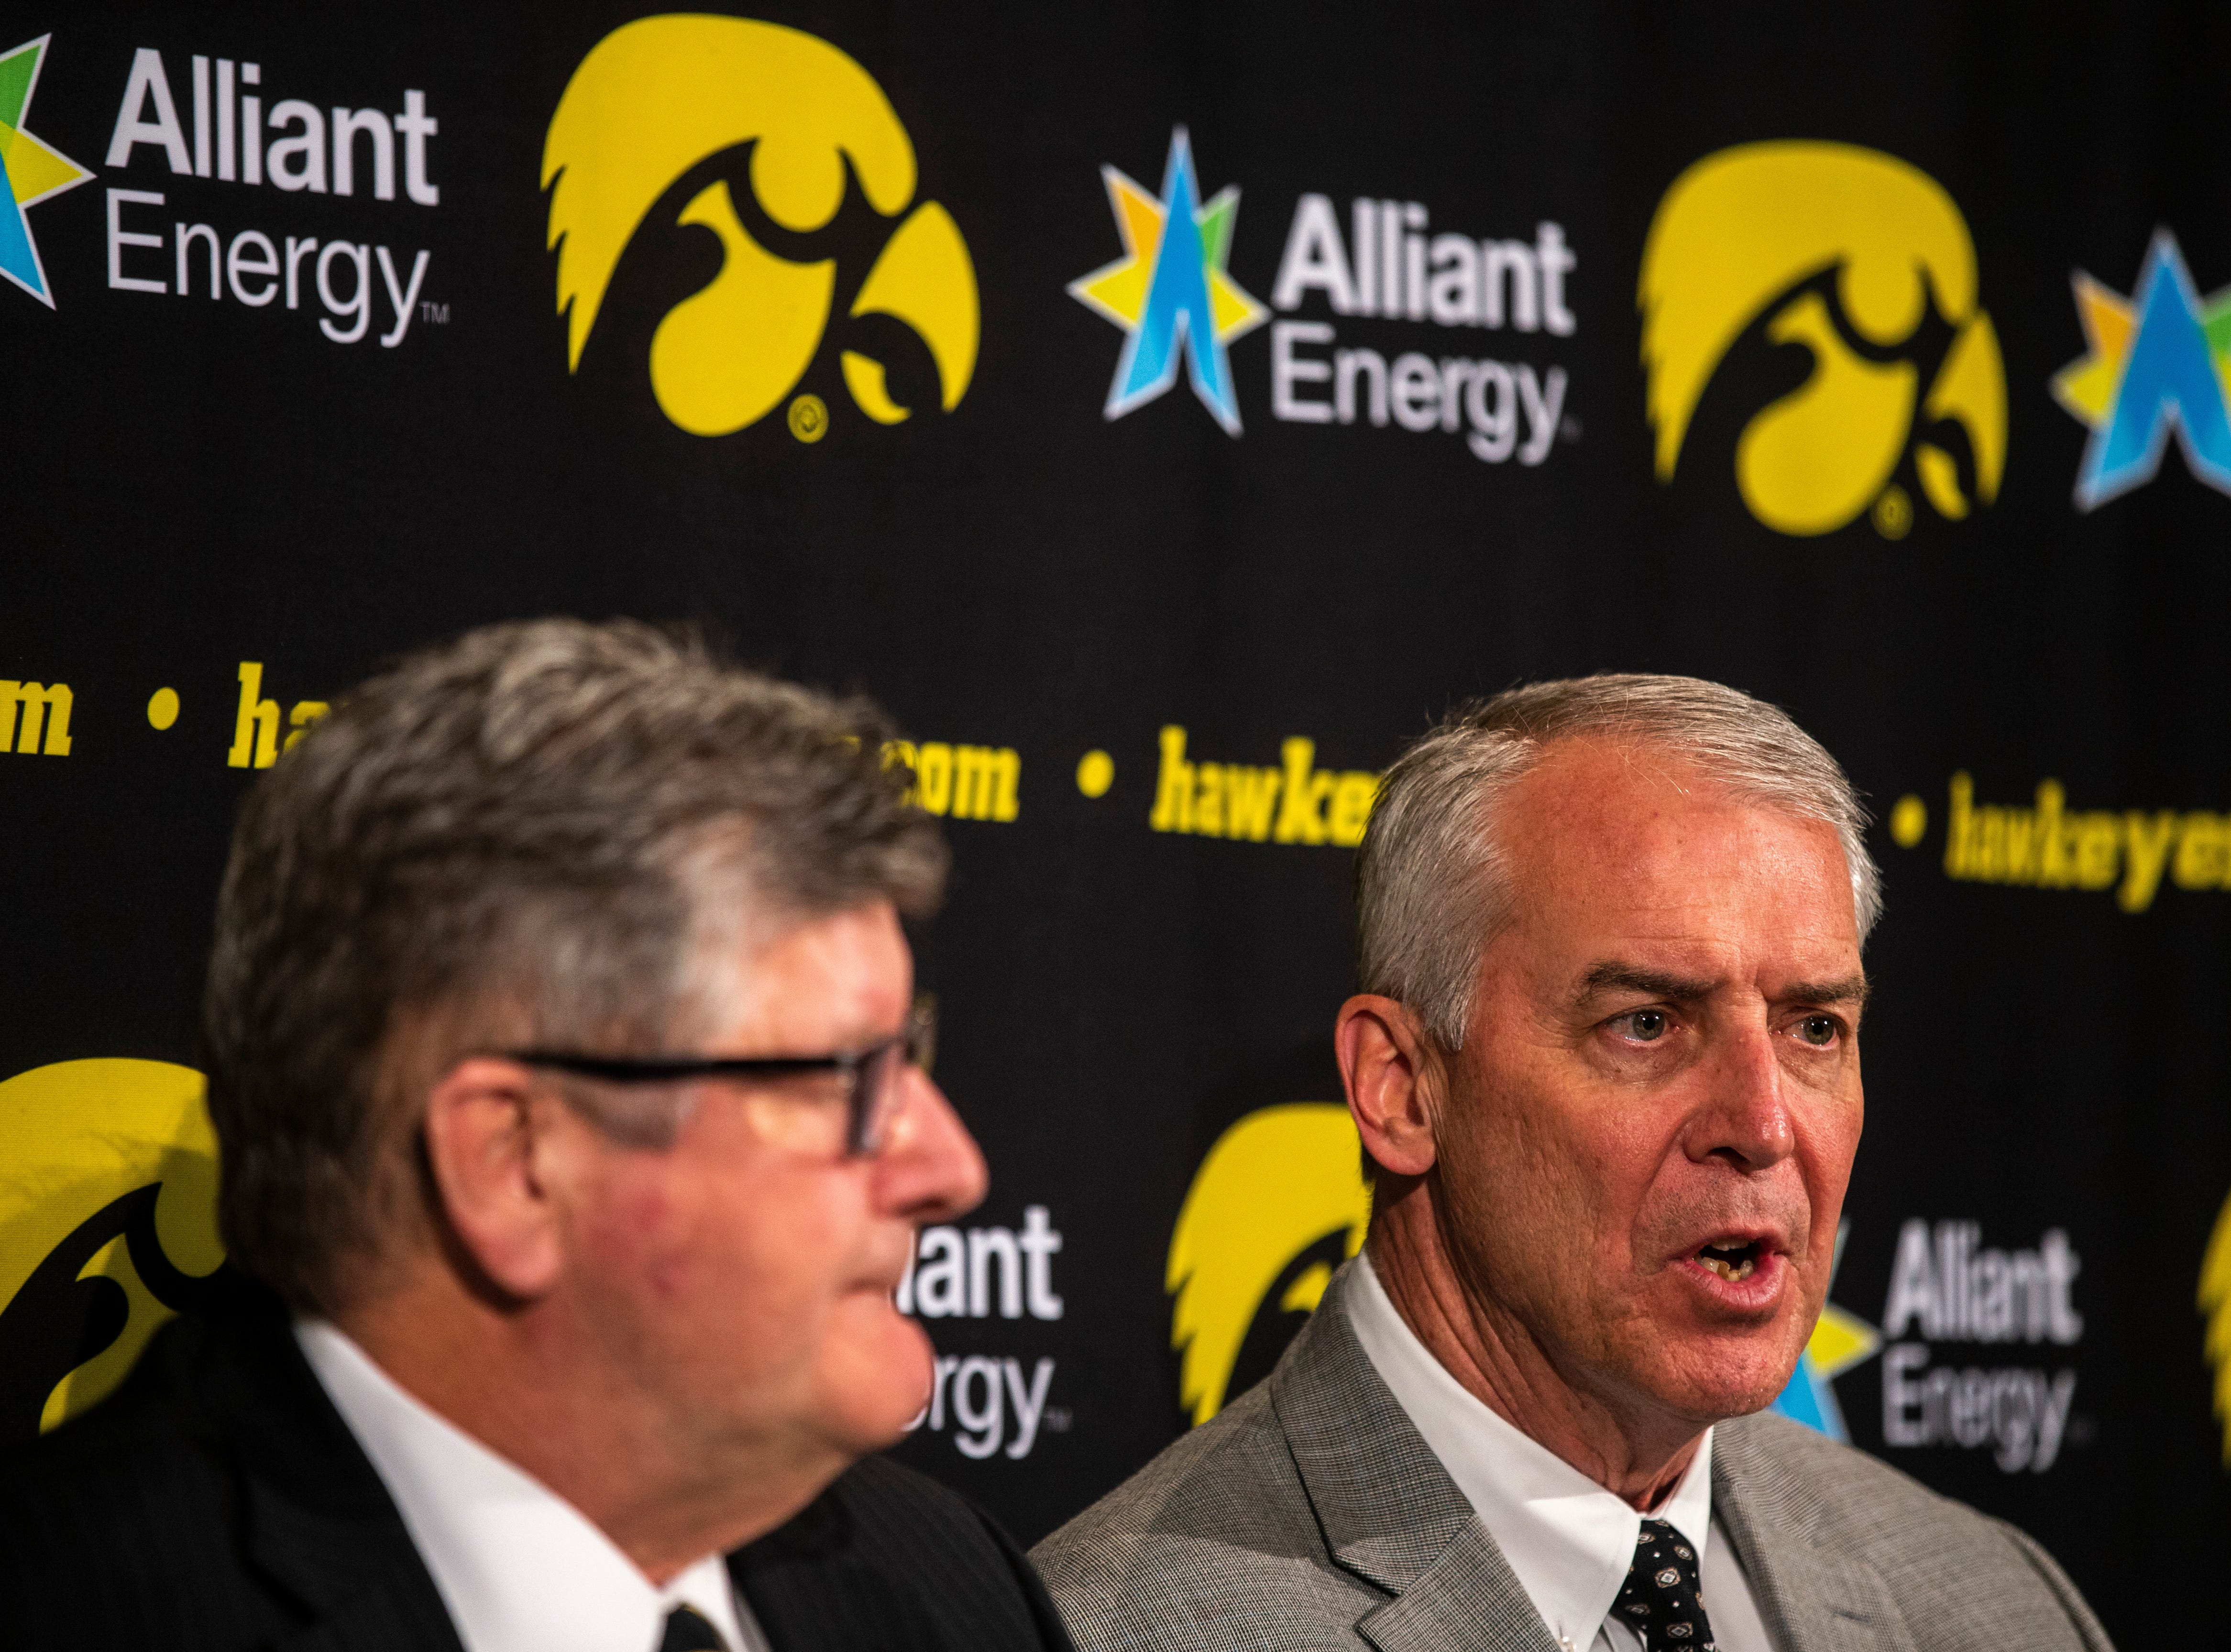 Iowa play-by-play commentator Gary Dolphin, left, listens while Iowa athletic director Gary Barta speaks during a press conference on Wednesday, Feb. 27, 2019, at Carver-Hawkeye Arena in Iowa City, Iowa.